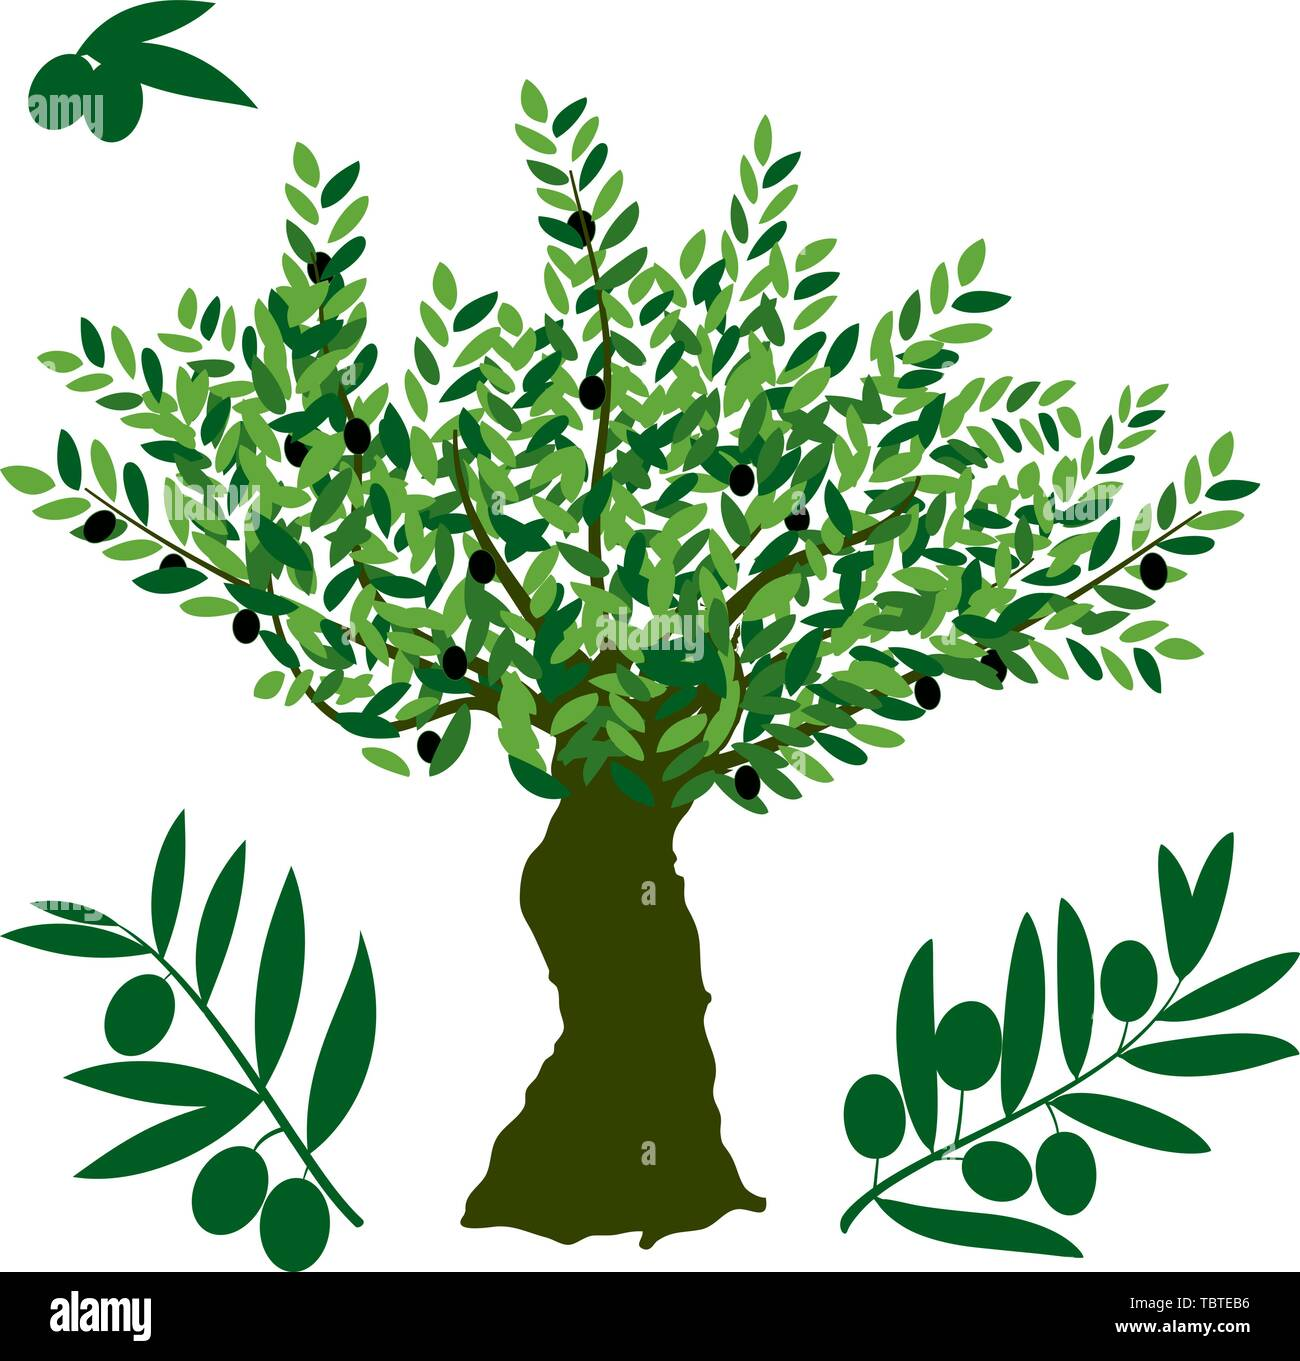 Vector illustration. Olive tree symbol, with detailed branch and fruits. - Stock Vector